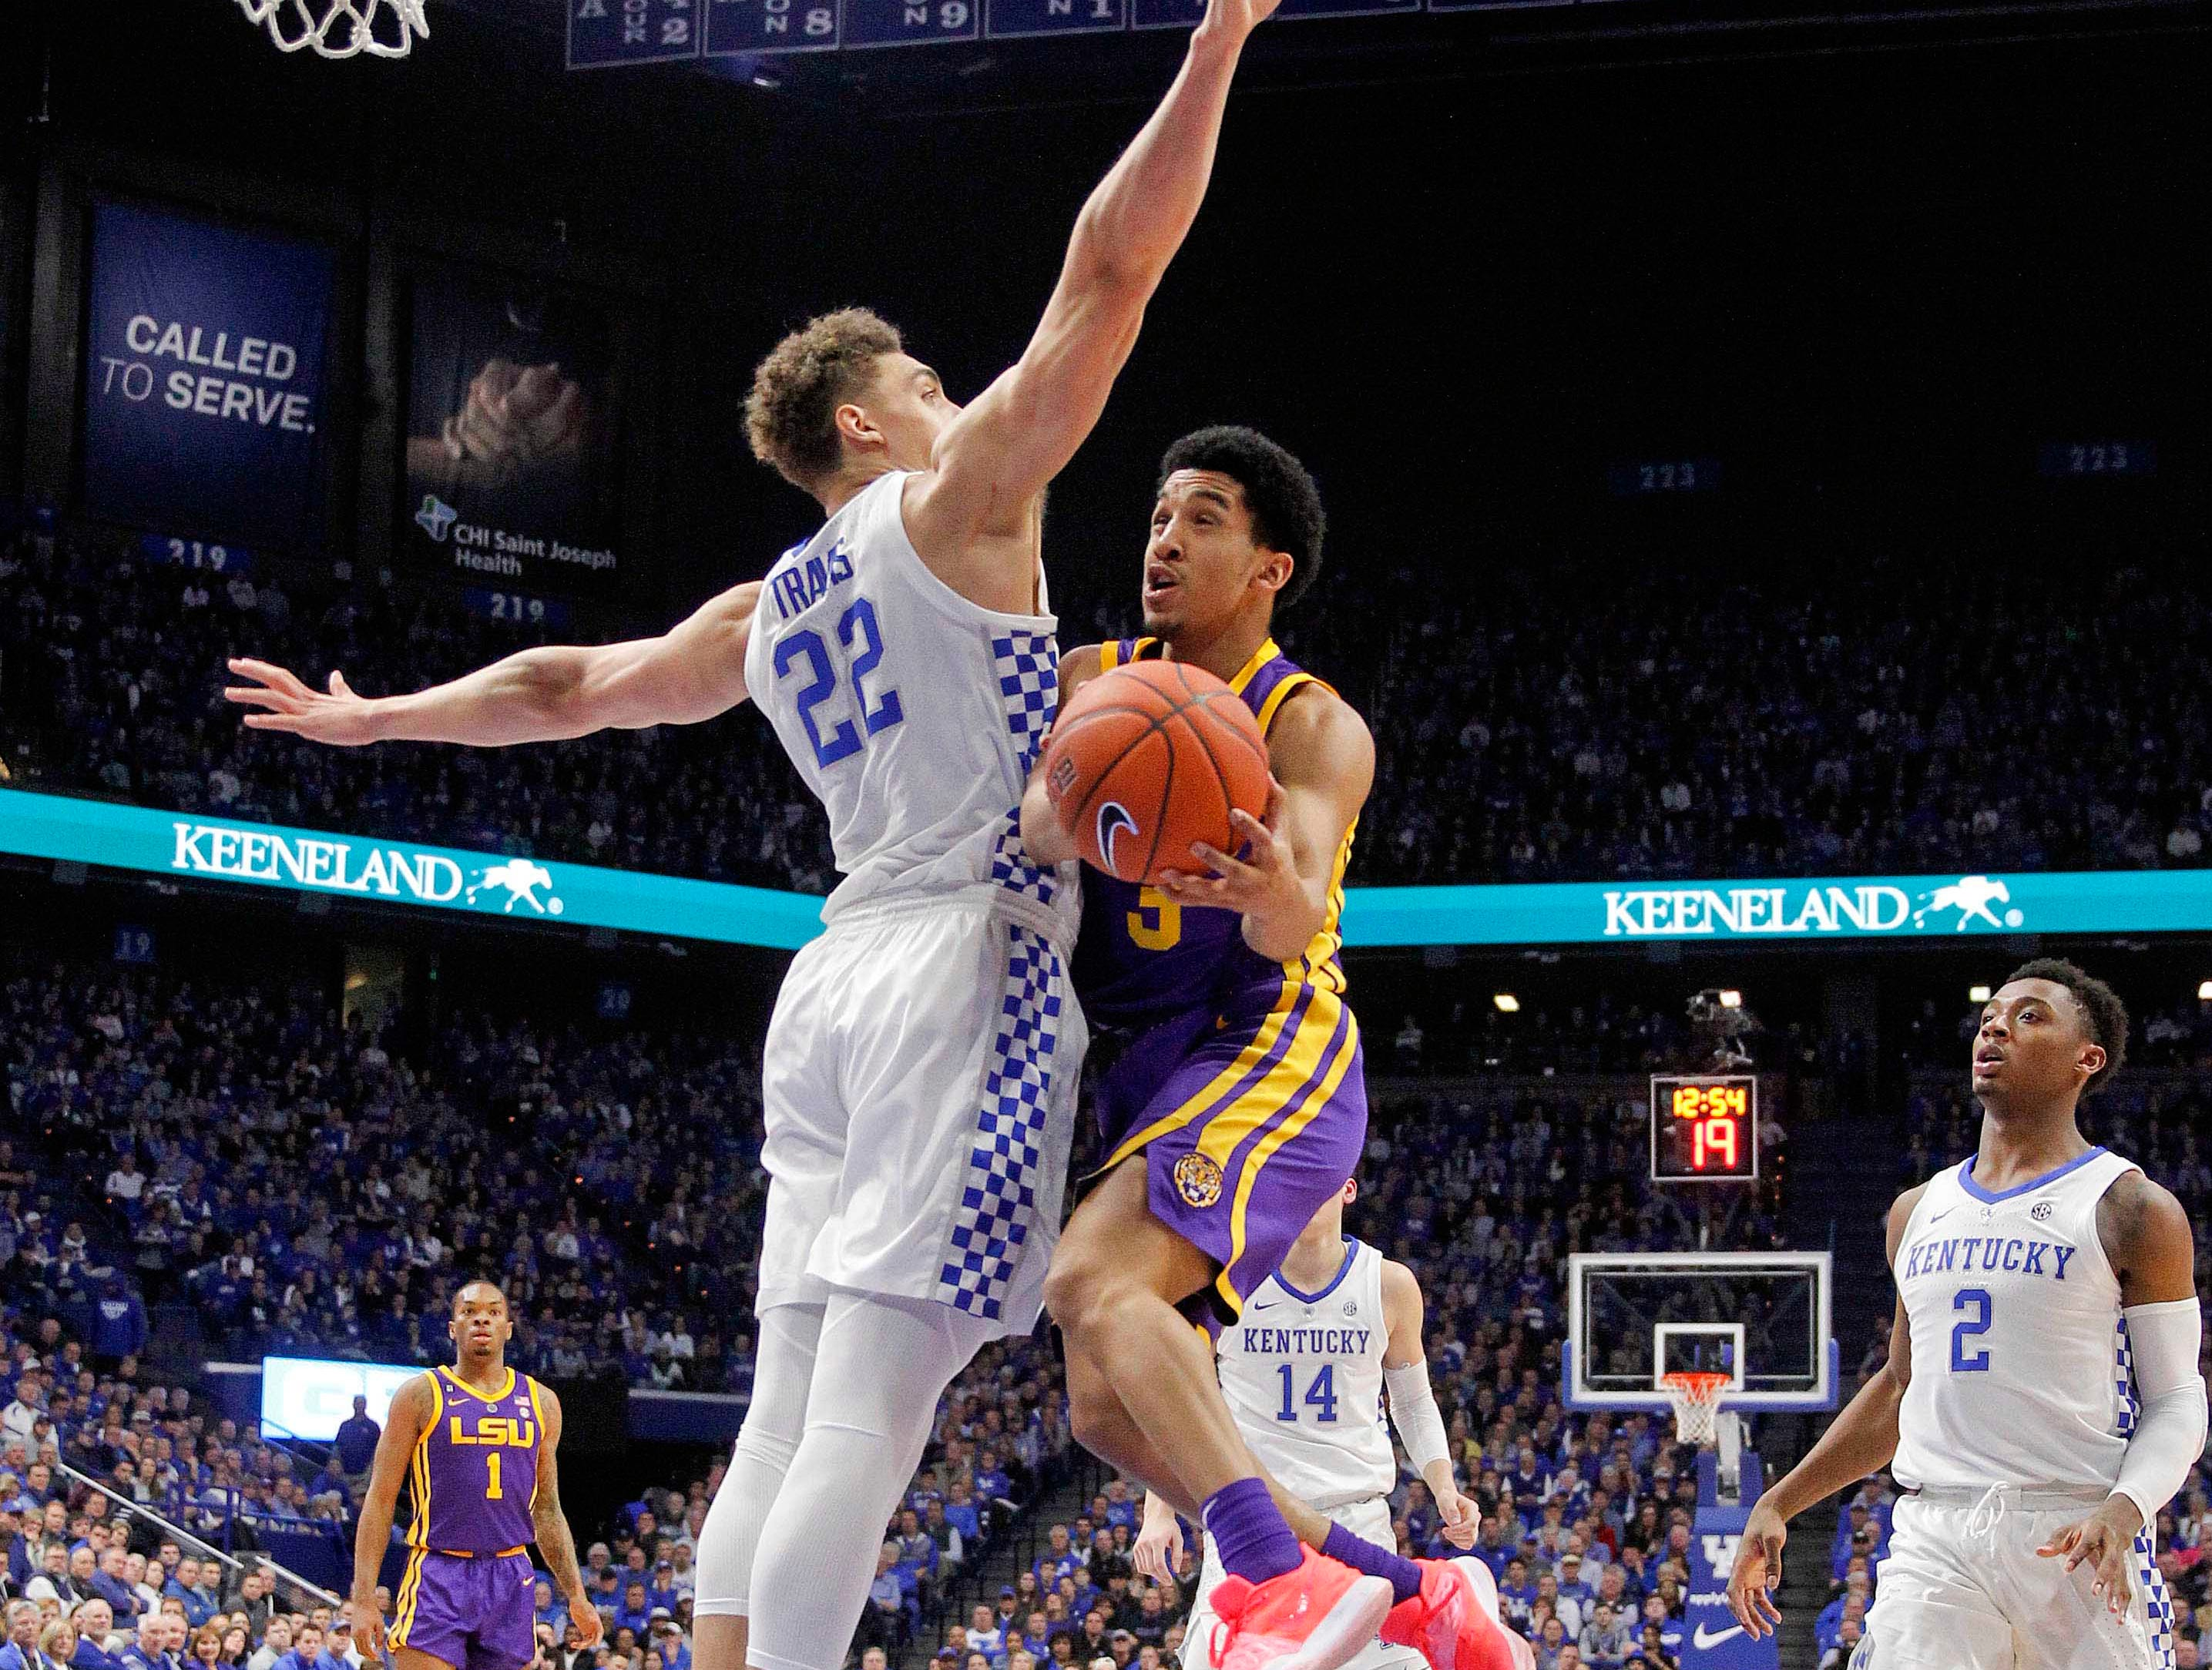 Feb 12, 2019; Lexington, KY, USA; LSU Tigers guard Tremont Waters (3) shoots the ball against Kentucky Wildcats forward Reid Travis (22) in the first half at Rupp Arena. Mandatory Credit: Mark Zerof-USA TODAY Sports